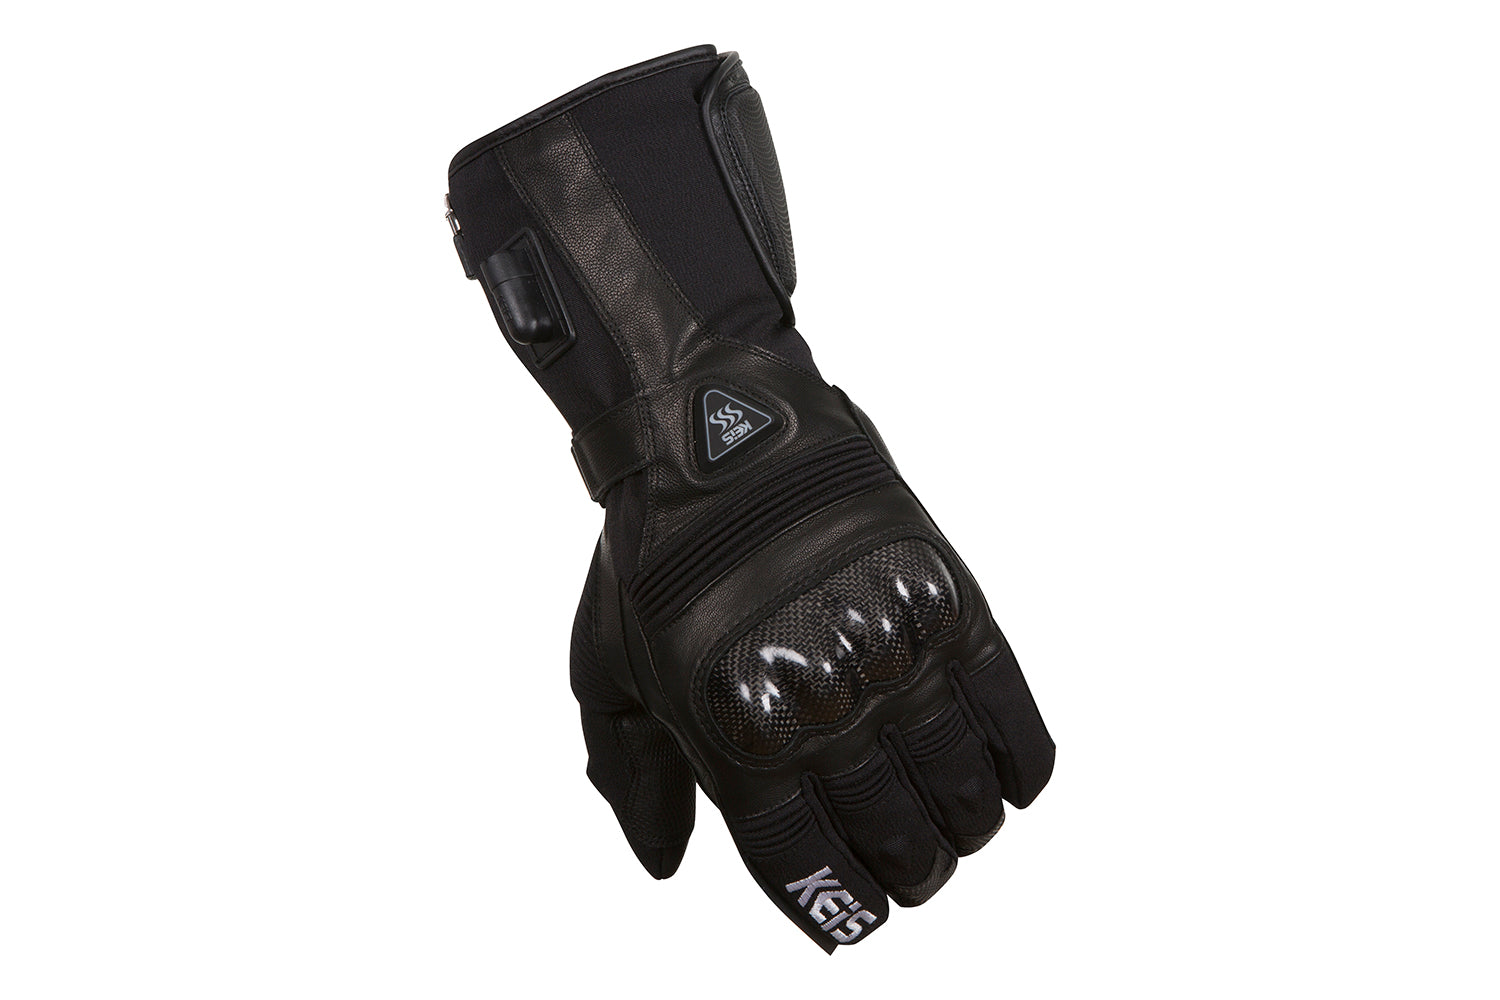 heated motorcycle gloves with protection on the knuckles